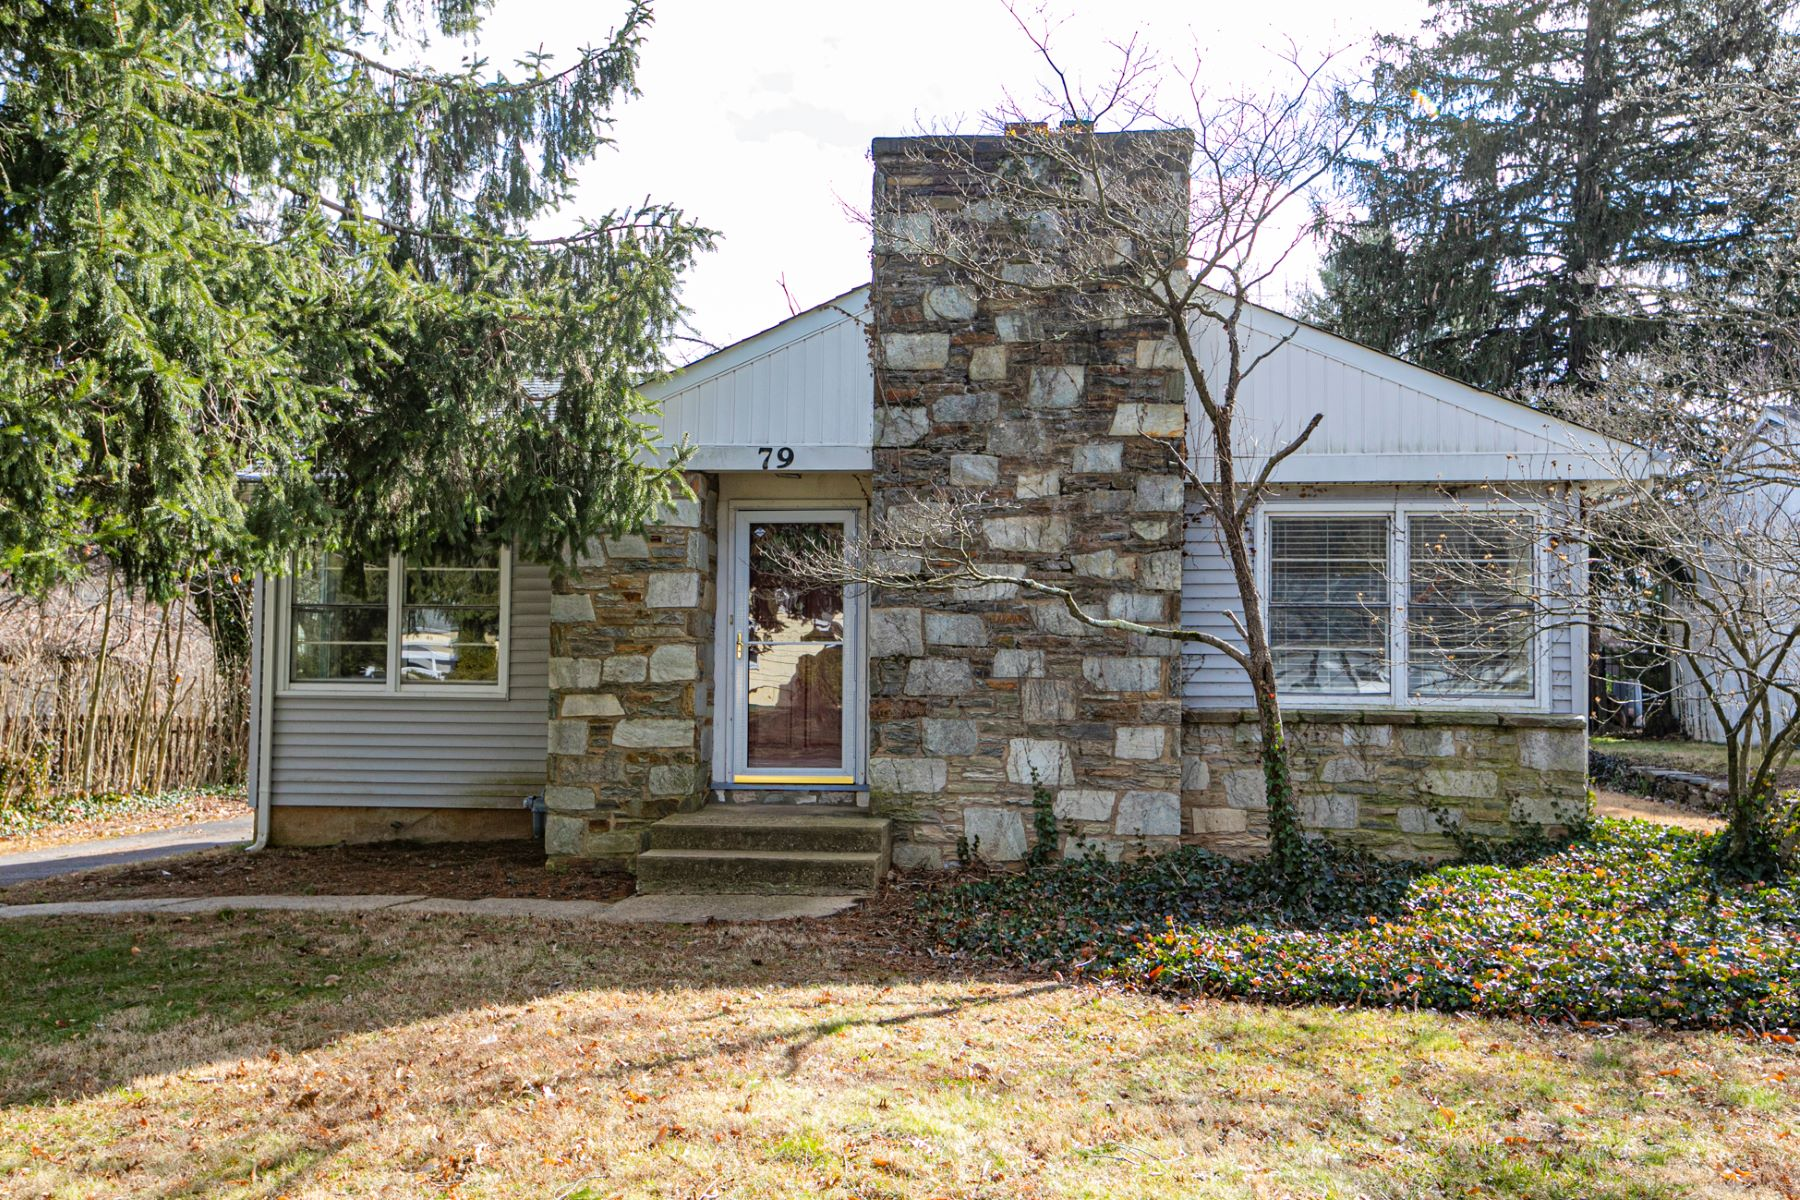 Property for Sale at Blocks from Everything: A Great Place to Start! 79 Erdman Avenue, Princeton, New Jersey 08540 United States